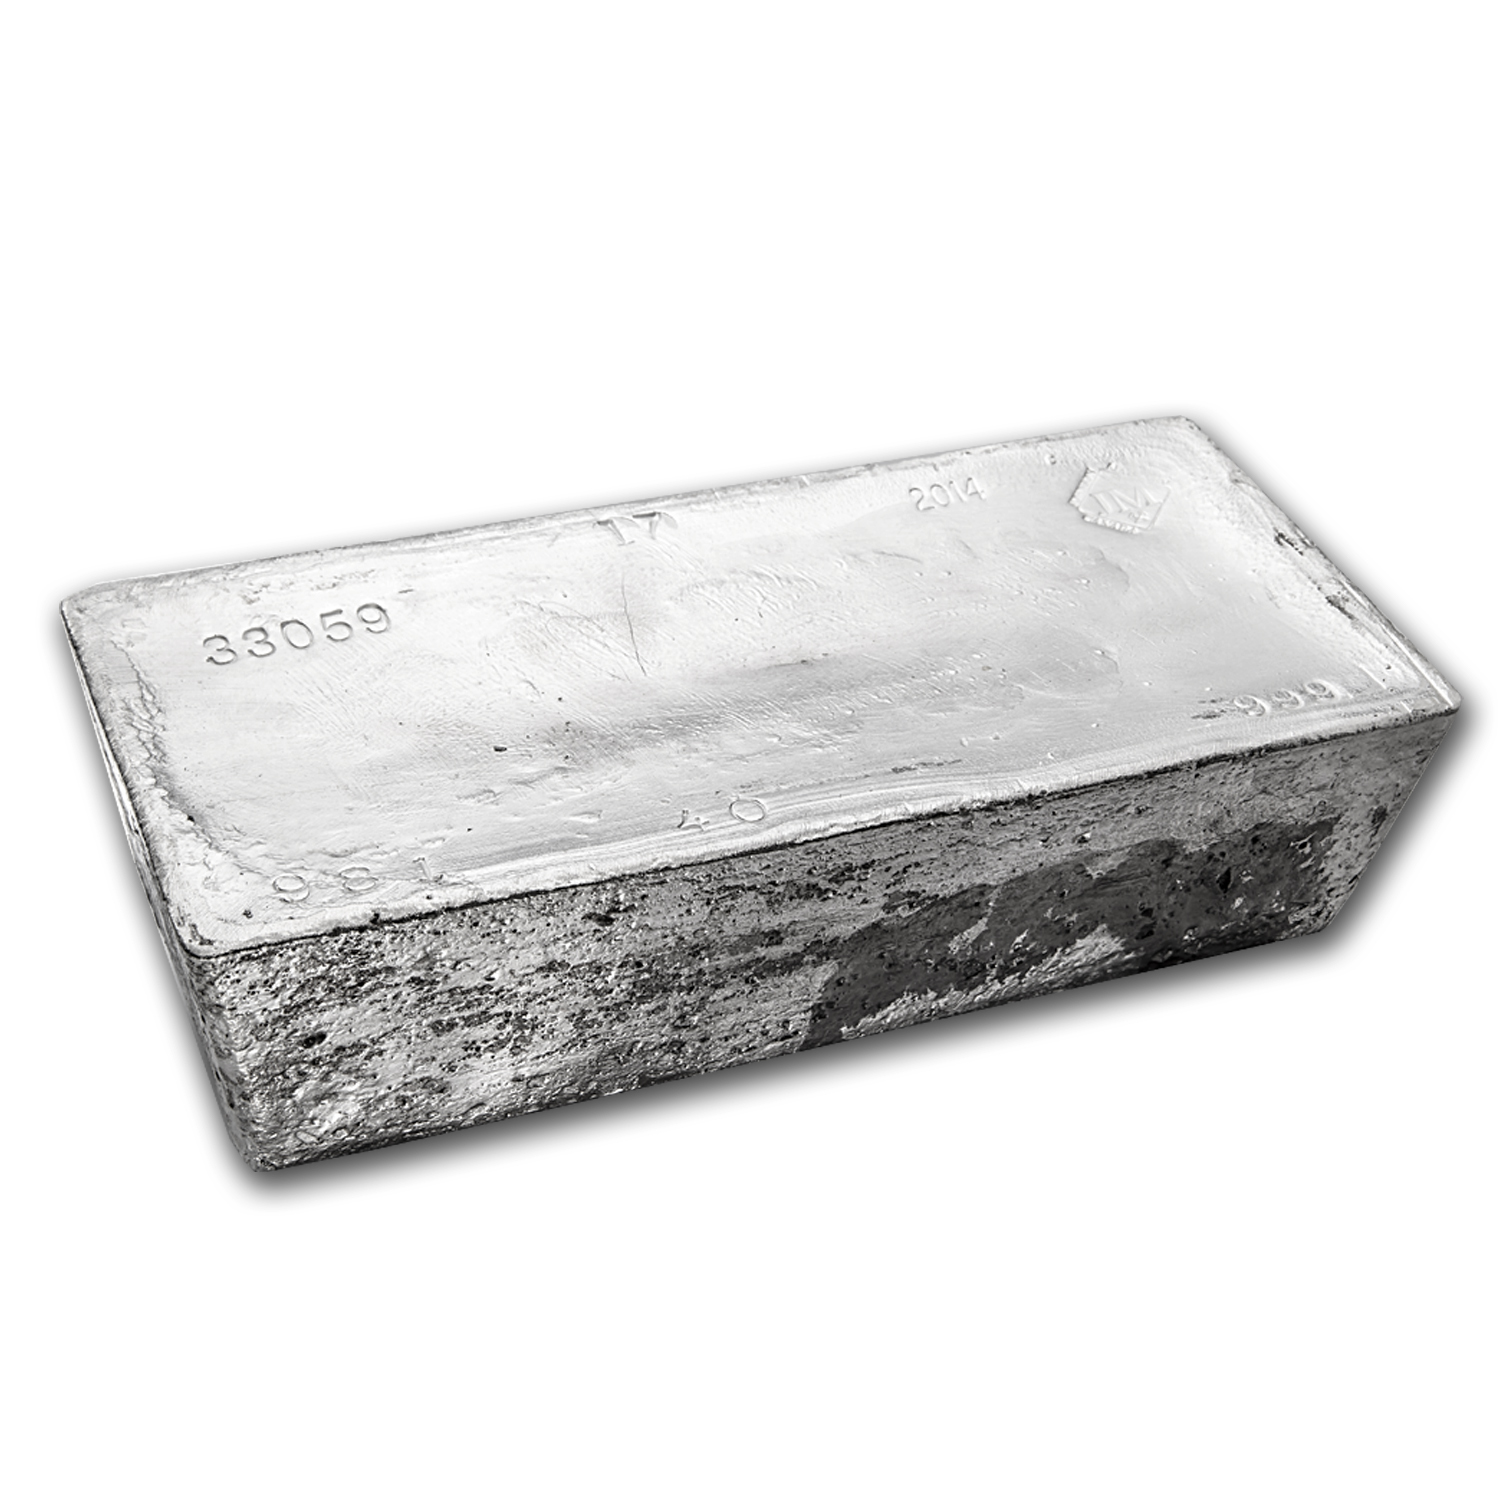 991.60 oz Silver Bars - Johnson Matthey